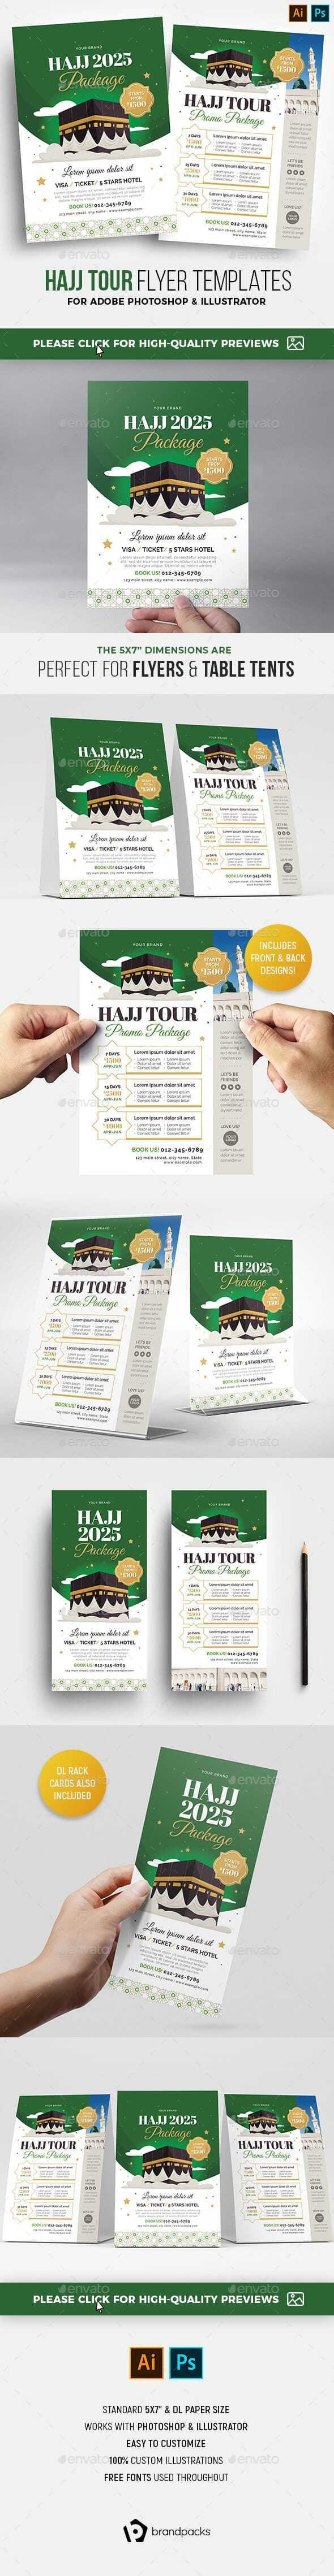 Hajj Umrah Flyer - Church Flyers